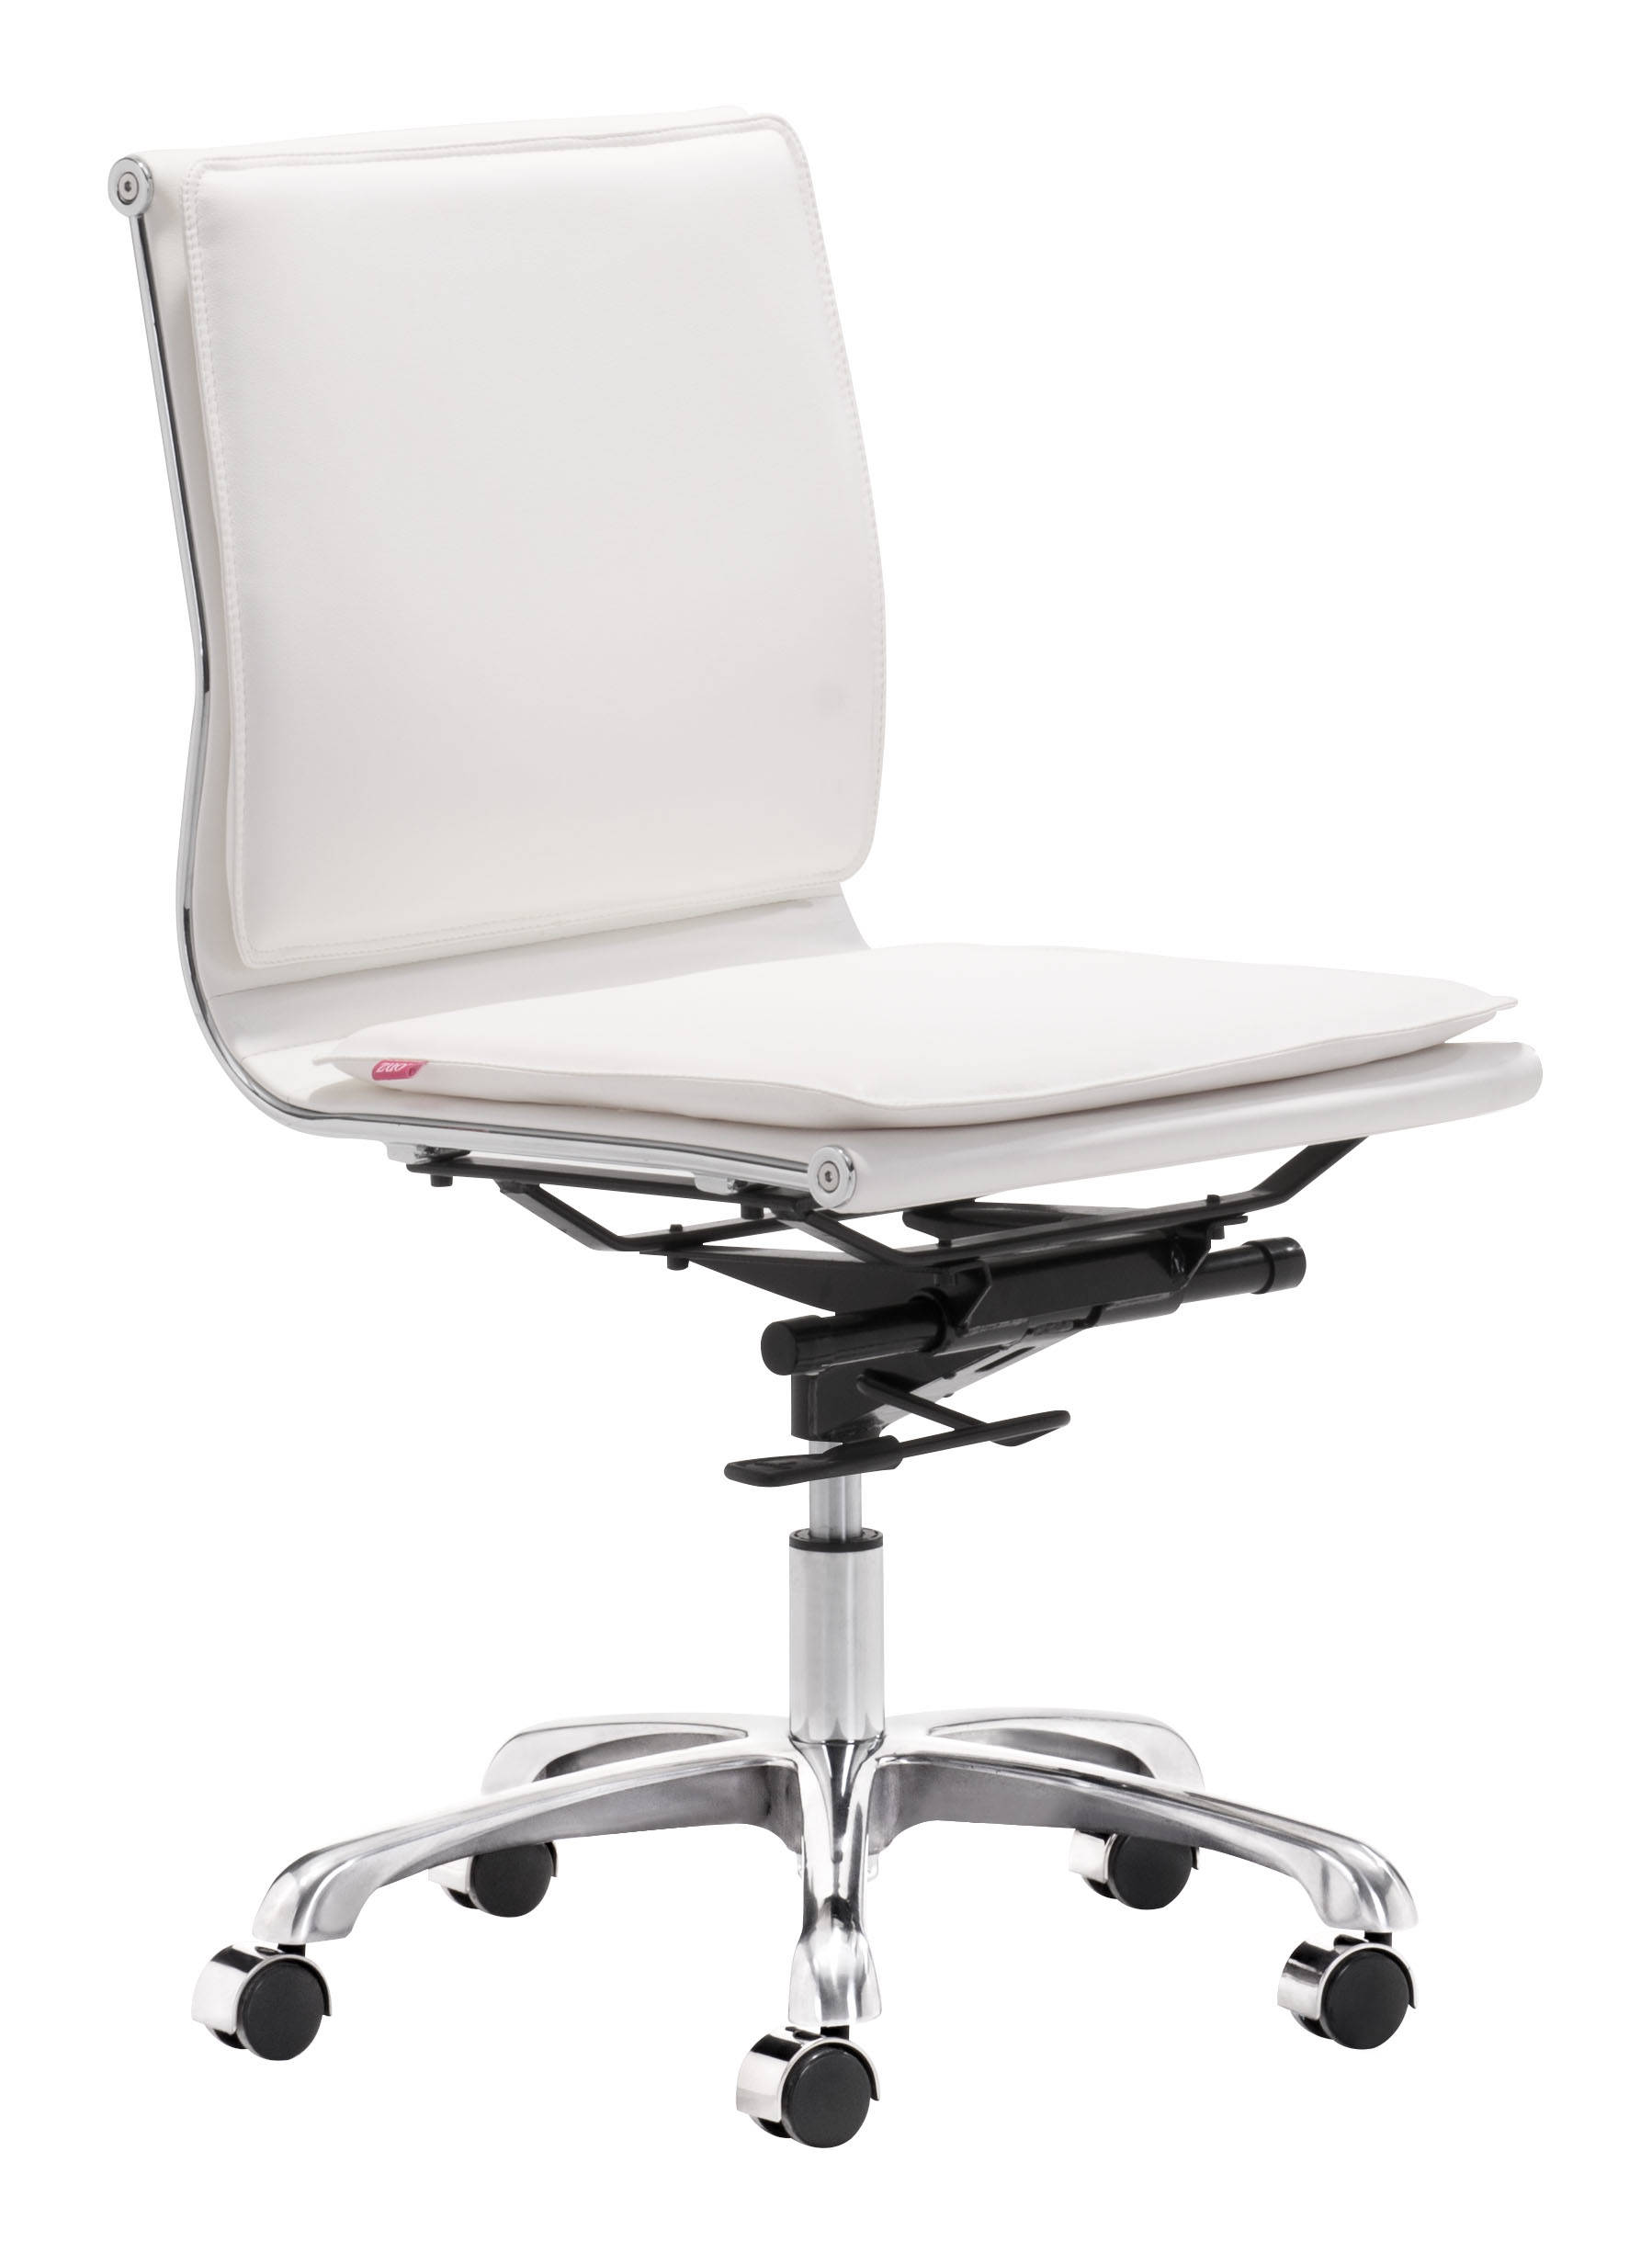 White armless office chair click to enlarge